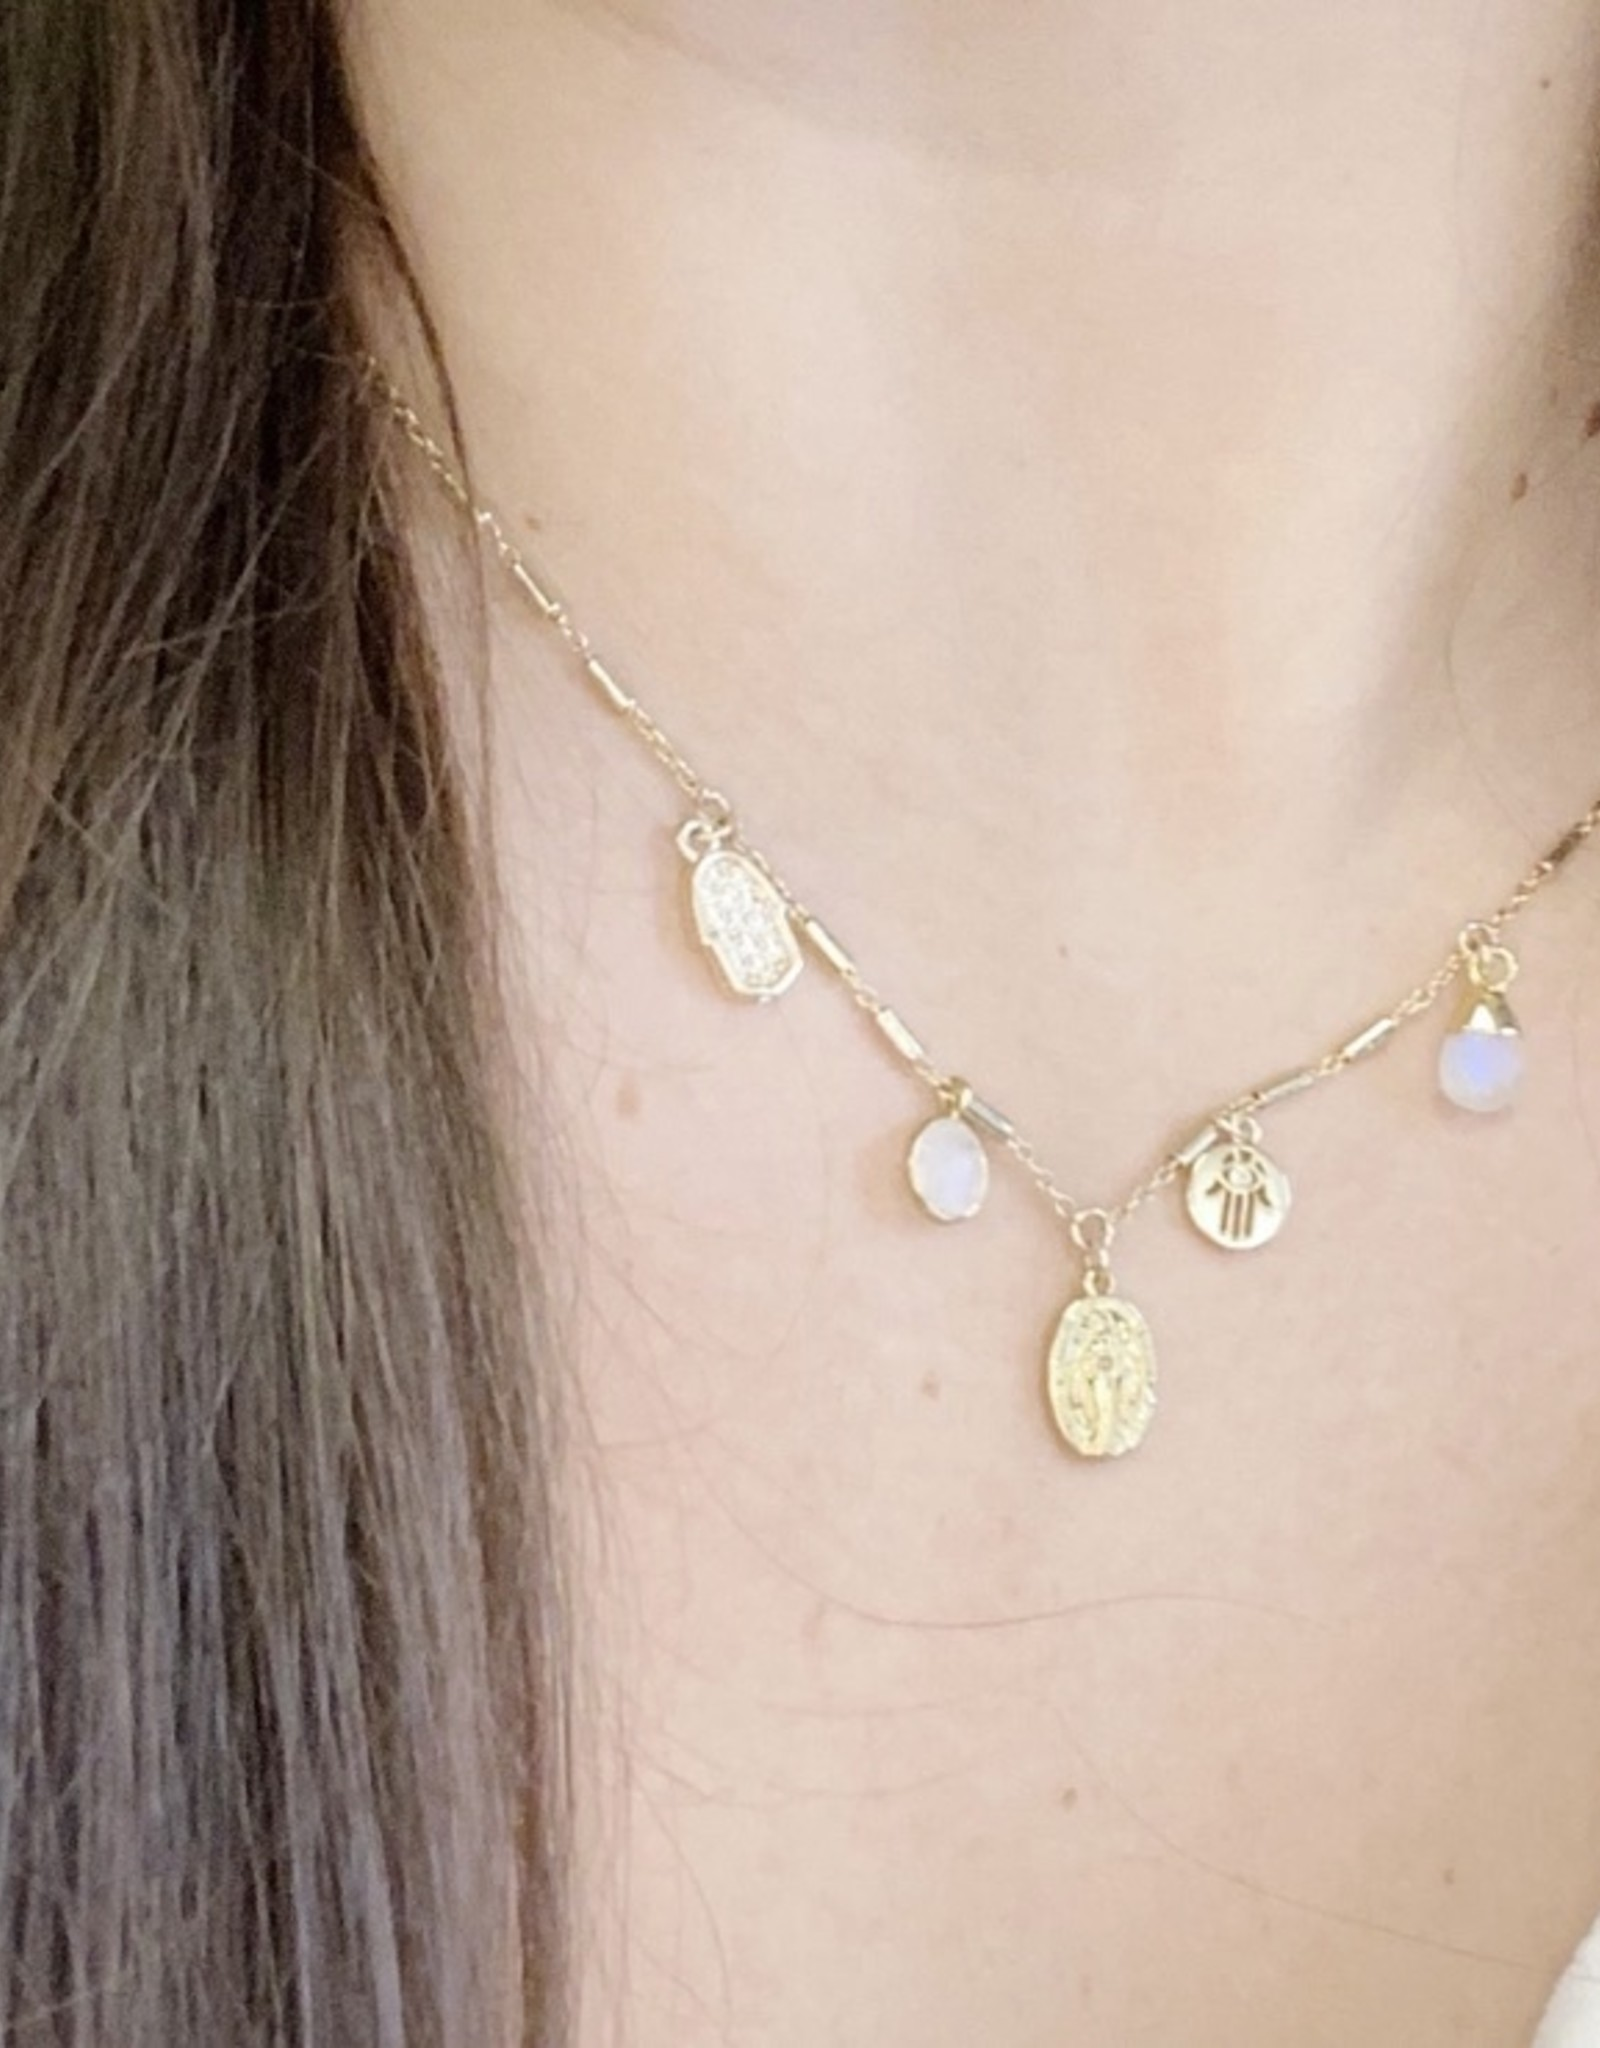 Dainty Charms Necklace